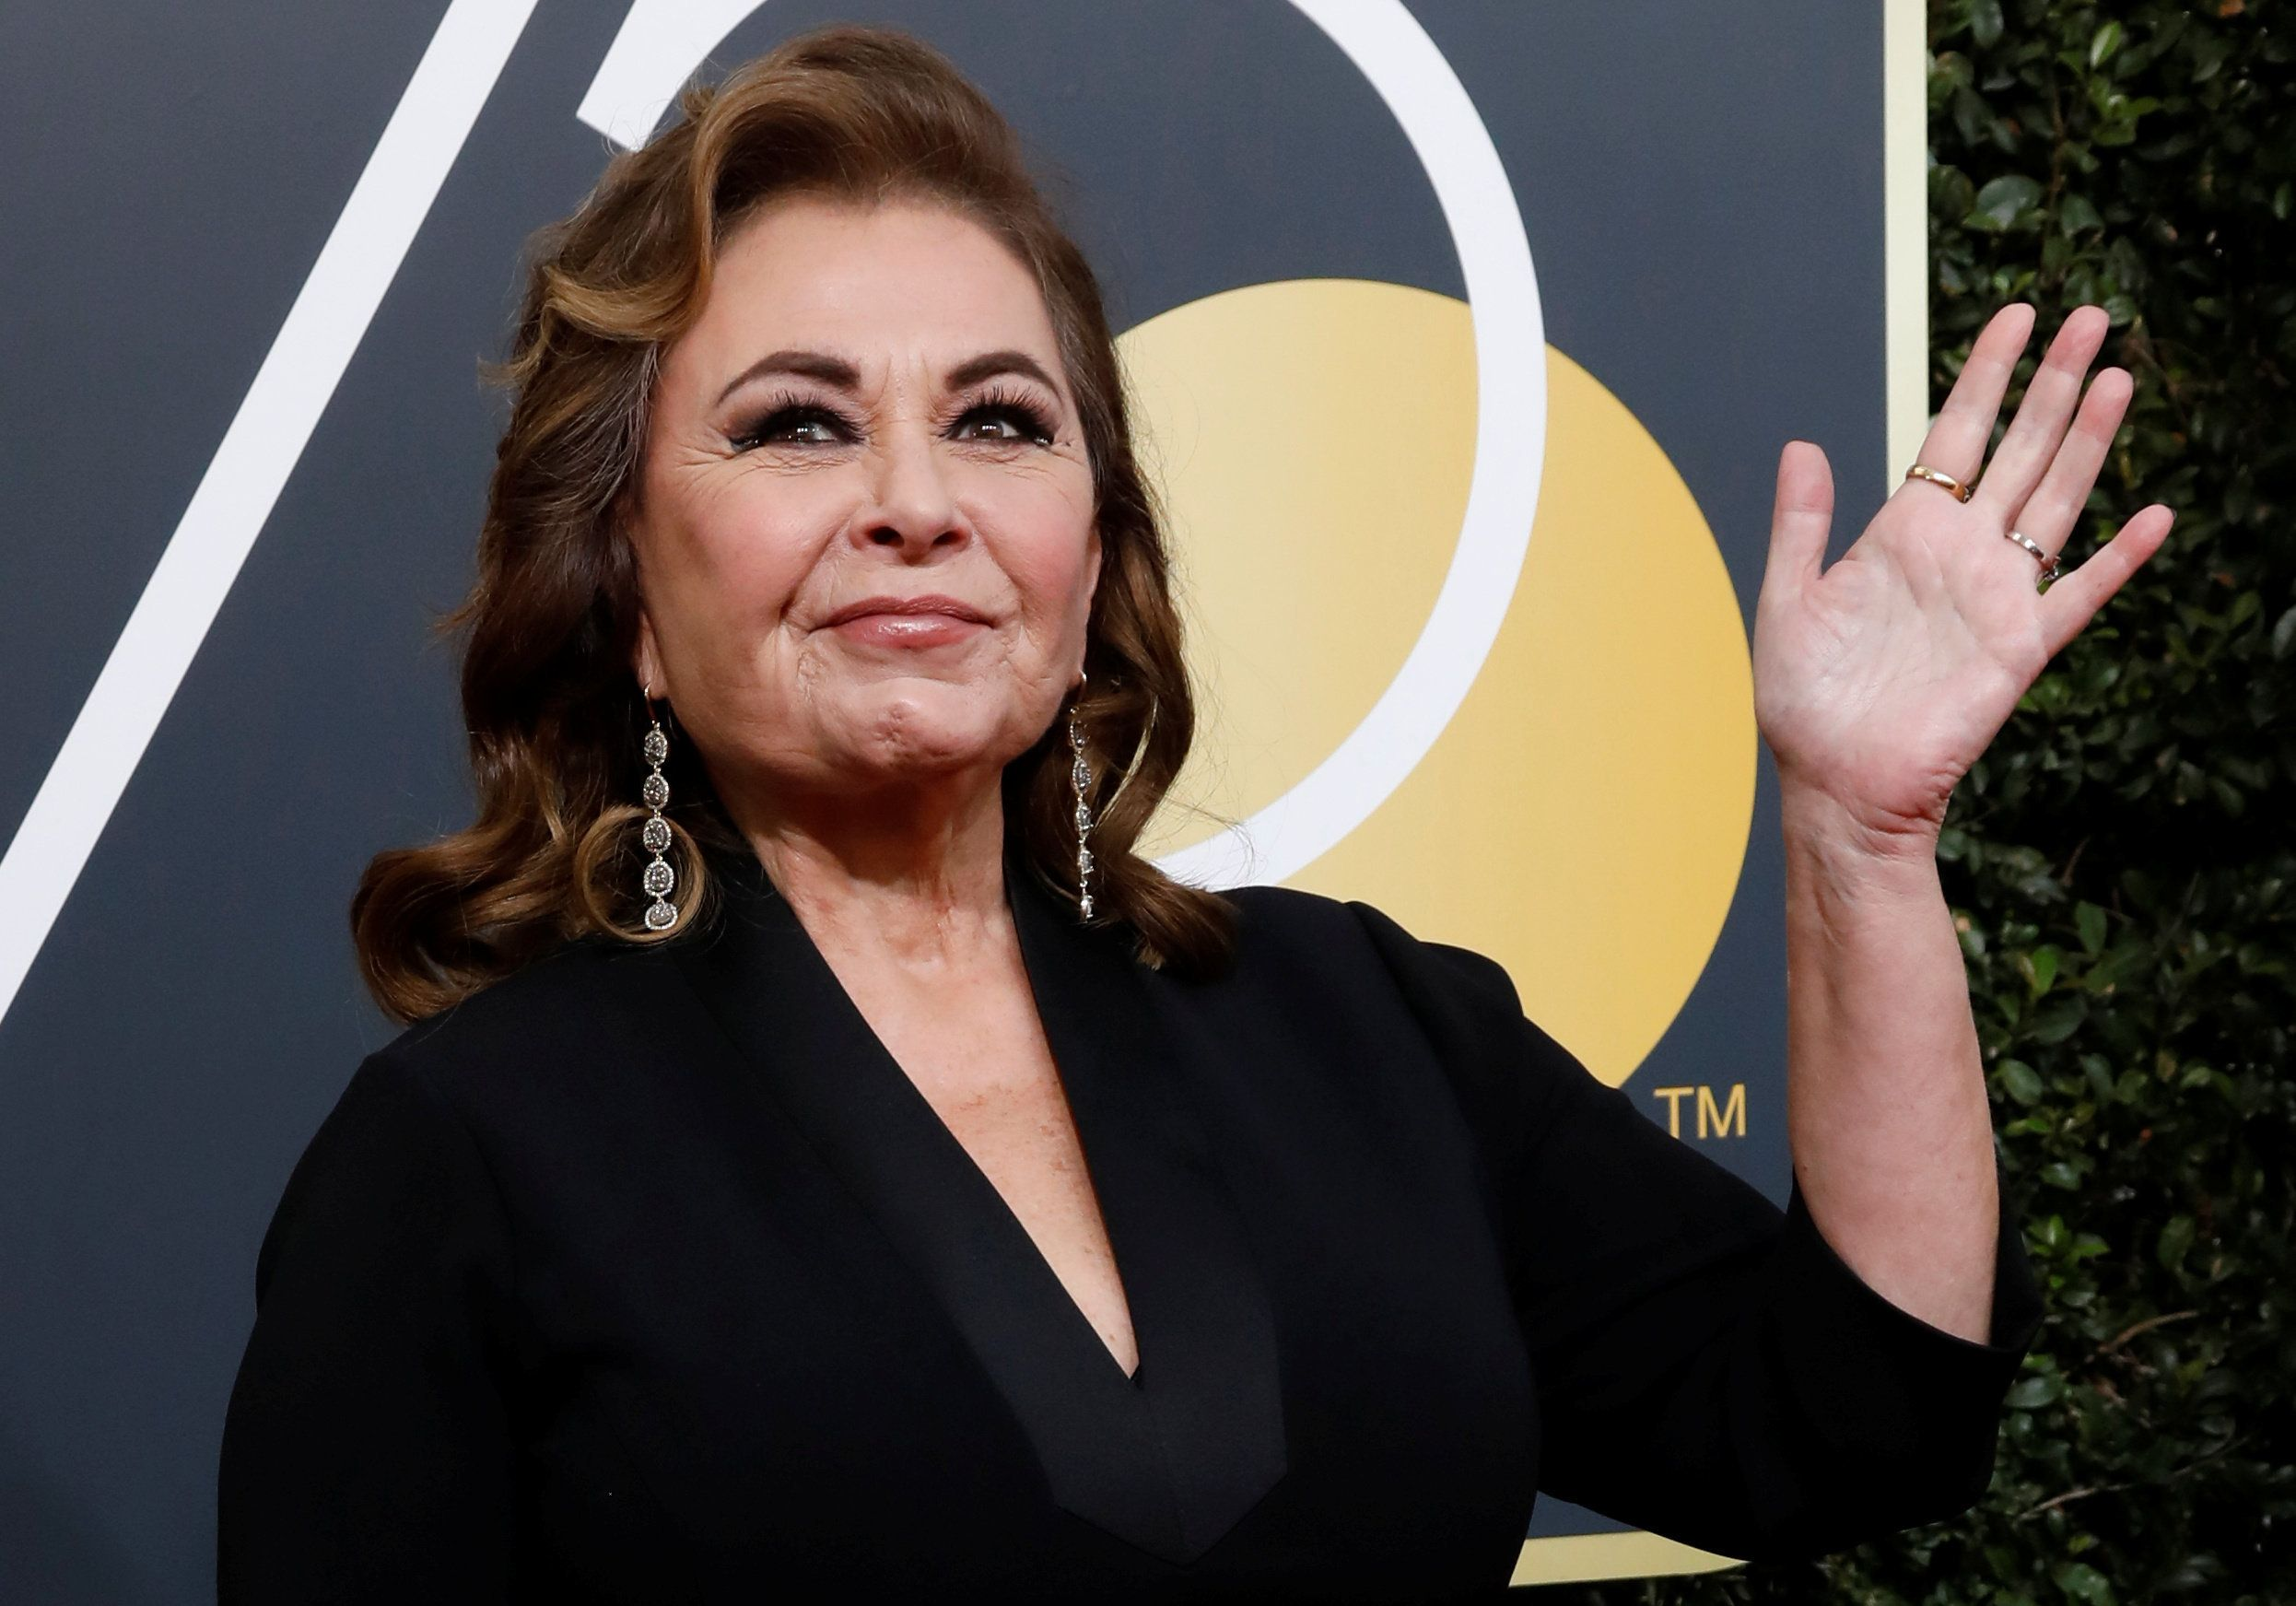 Actress Roseanne Barr arrives at the Golden Globe Awards on Jan. 7